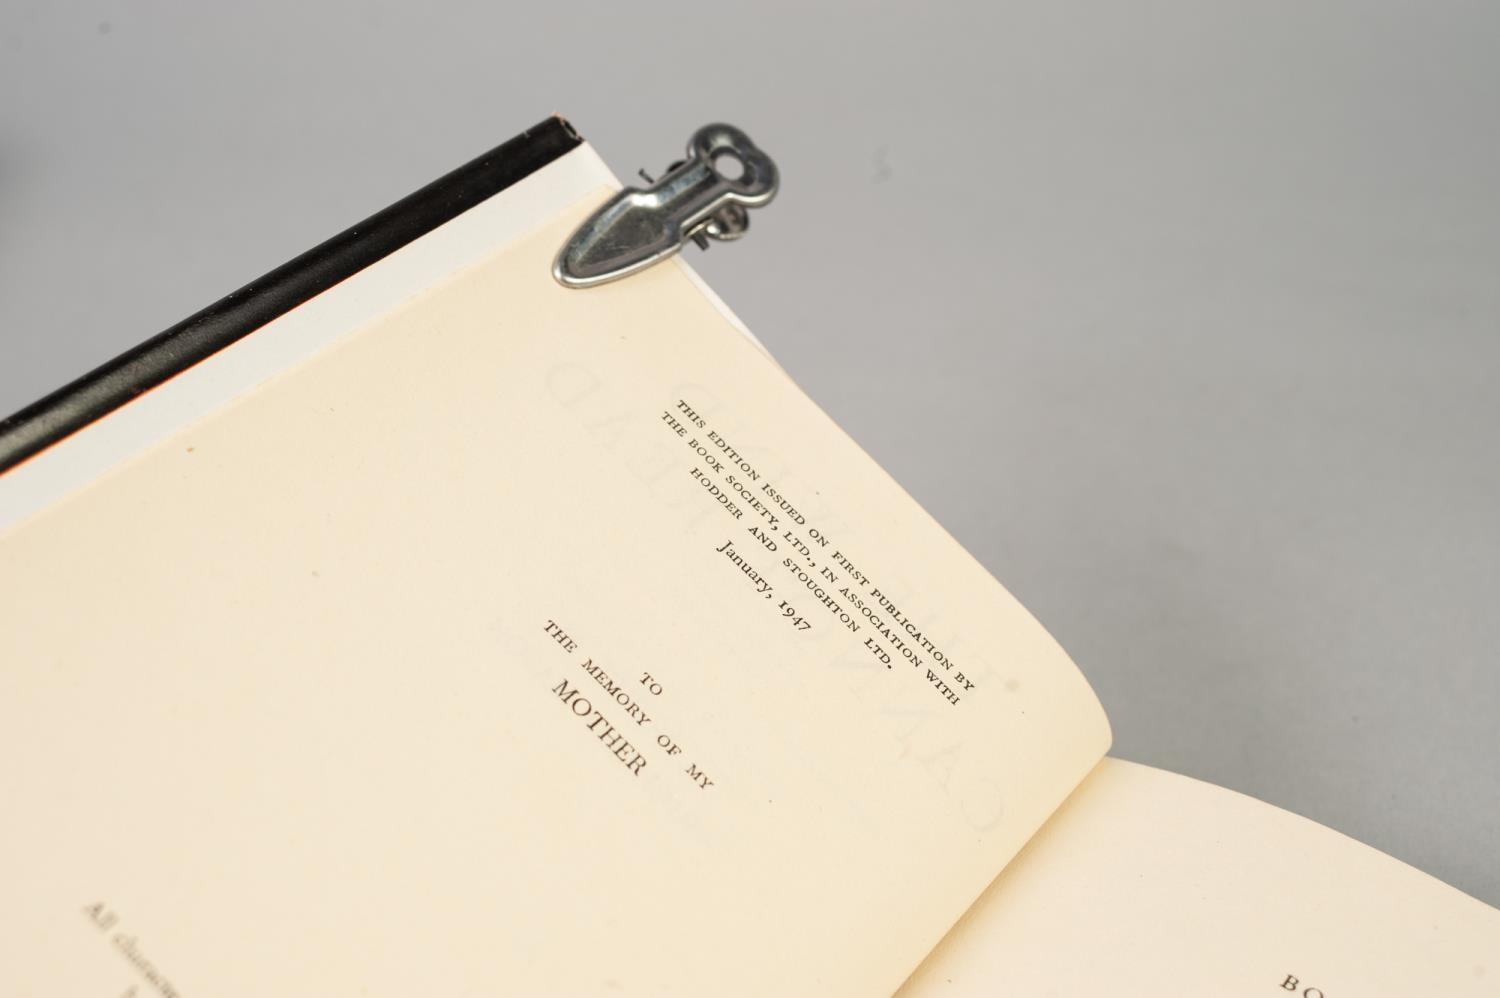 Lot 57 - SIGNED TITLES: RICHARD MASON, The Wind Cannot Read, 1947, with dust jacket; E C LARGE, Sugar in